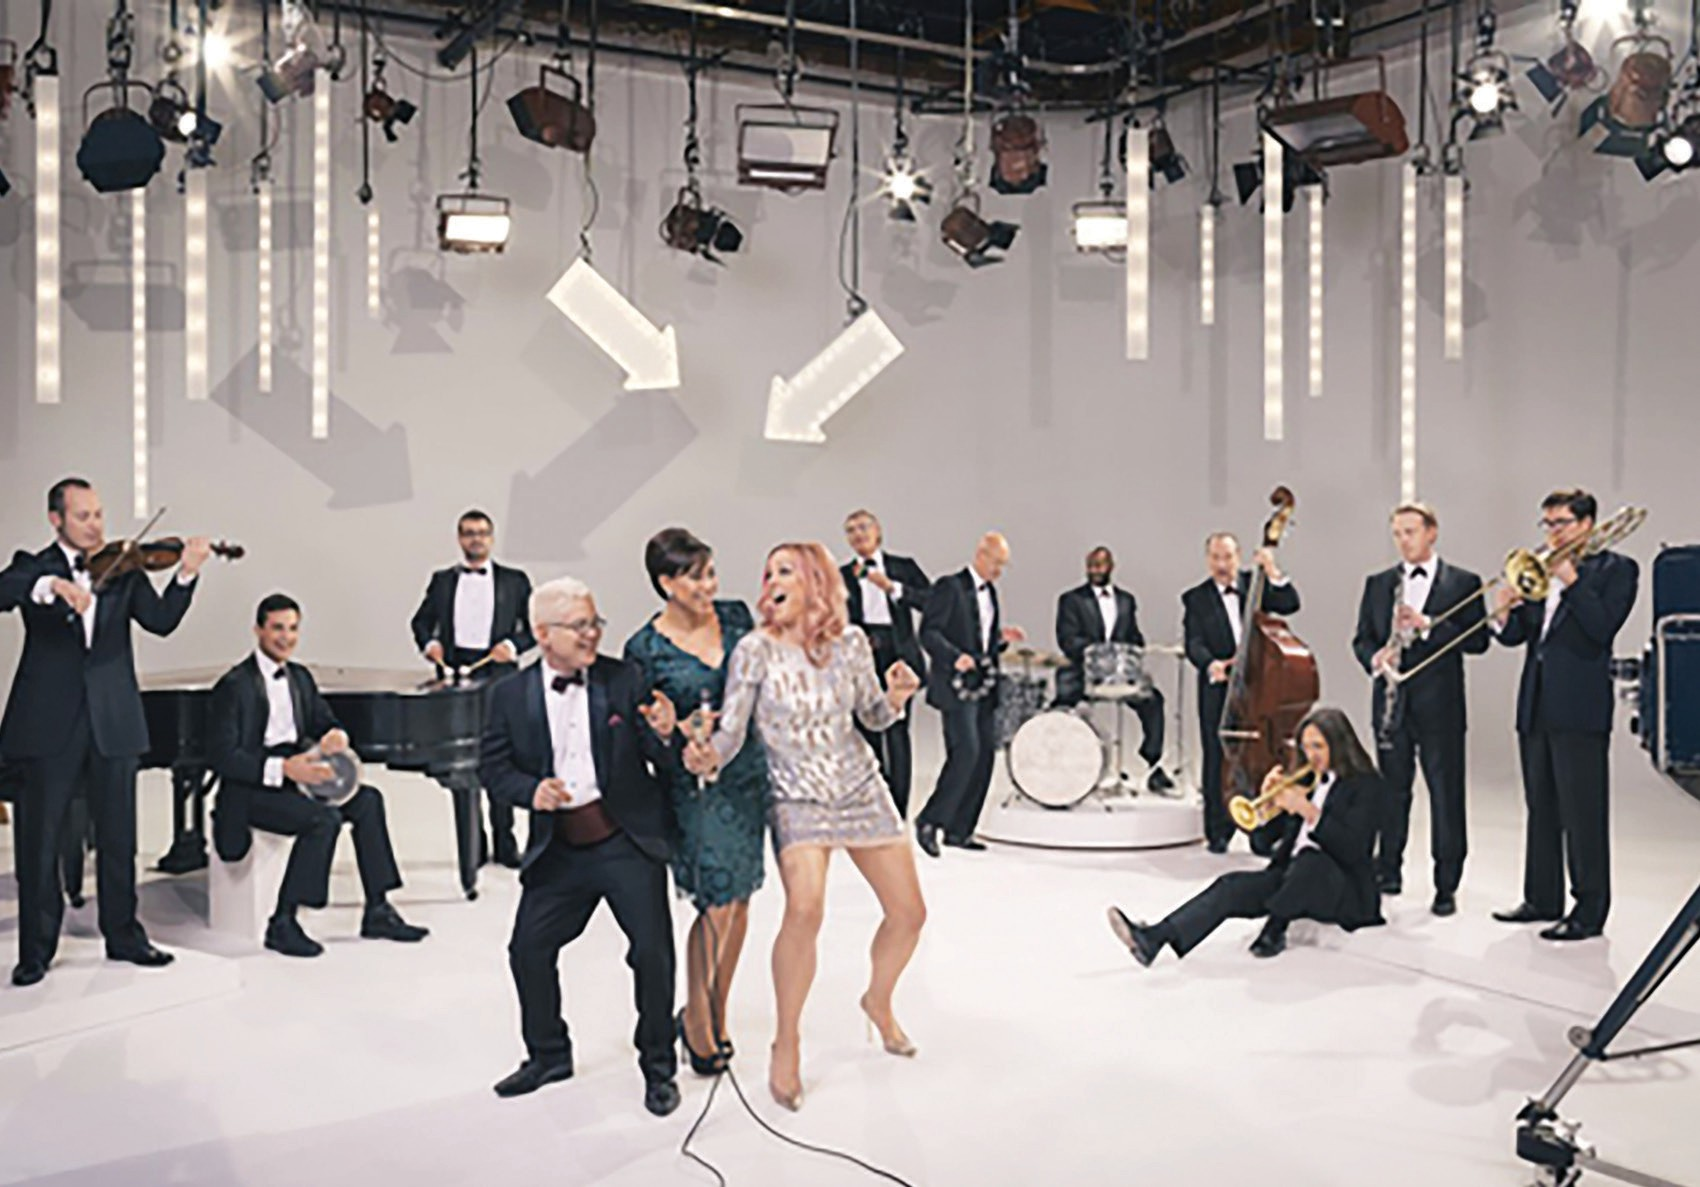 Pink Martini will play a selection of holiday tunes at their December 3 concert.